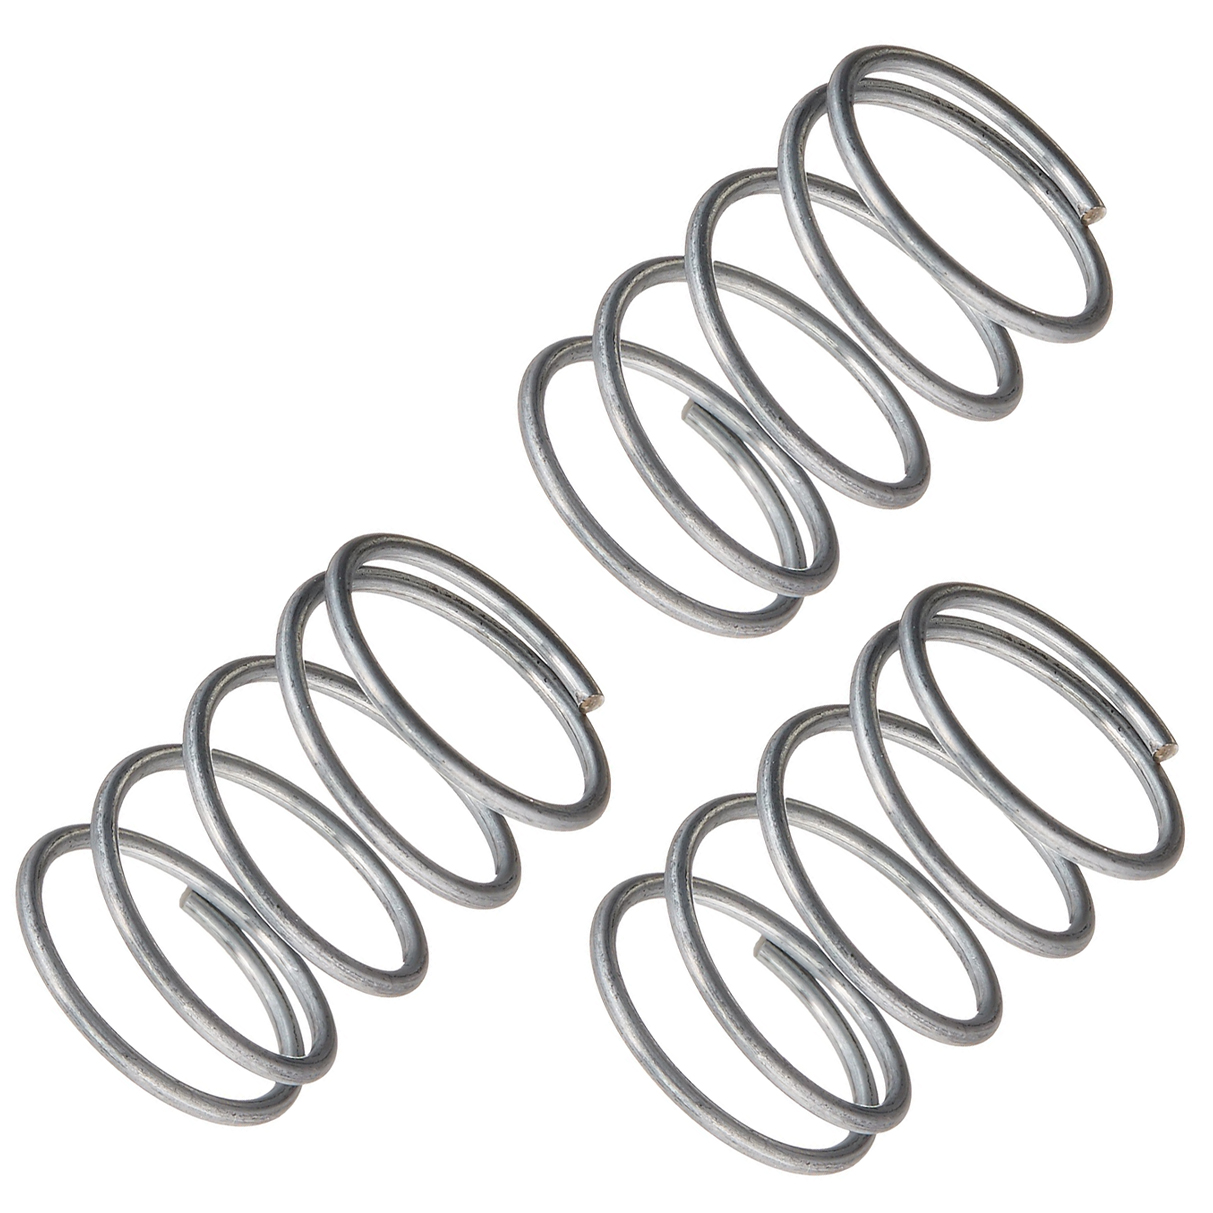 Ryobi 3 Pack Of Genuine OEM Replacement Springs # 791